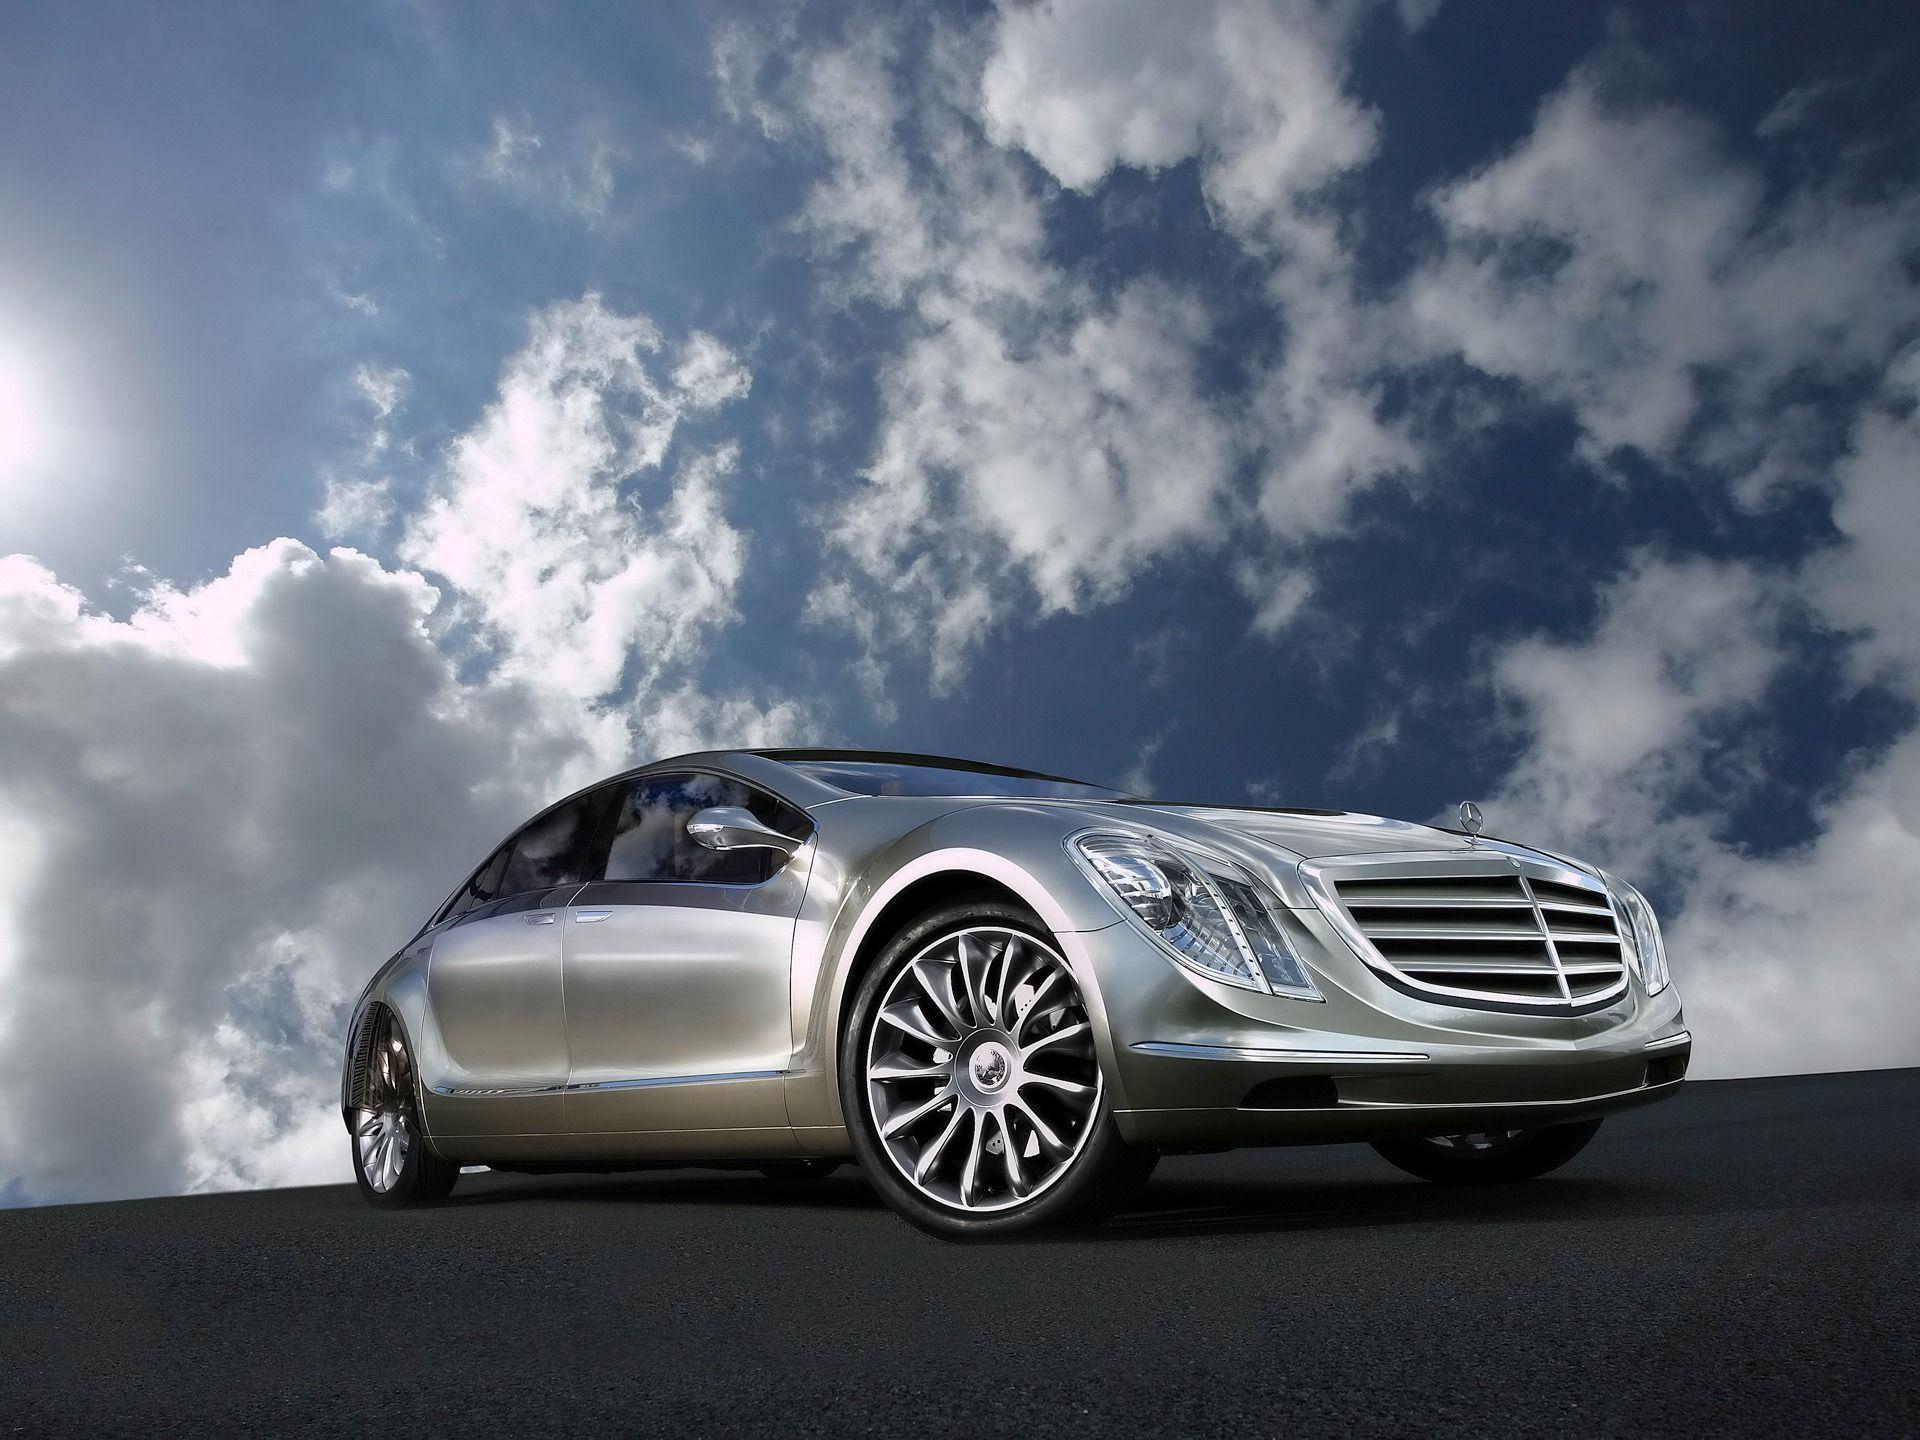 mercedes-benz wallpapers - wallpaper cave